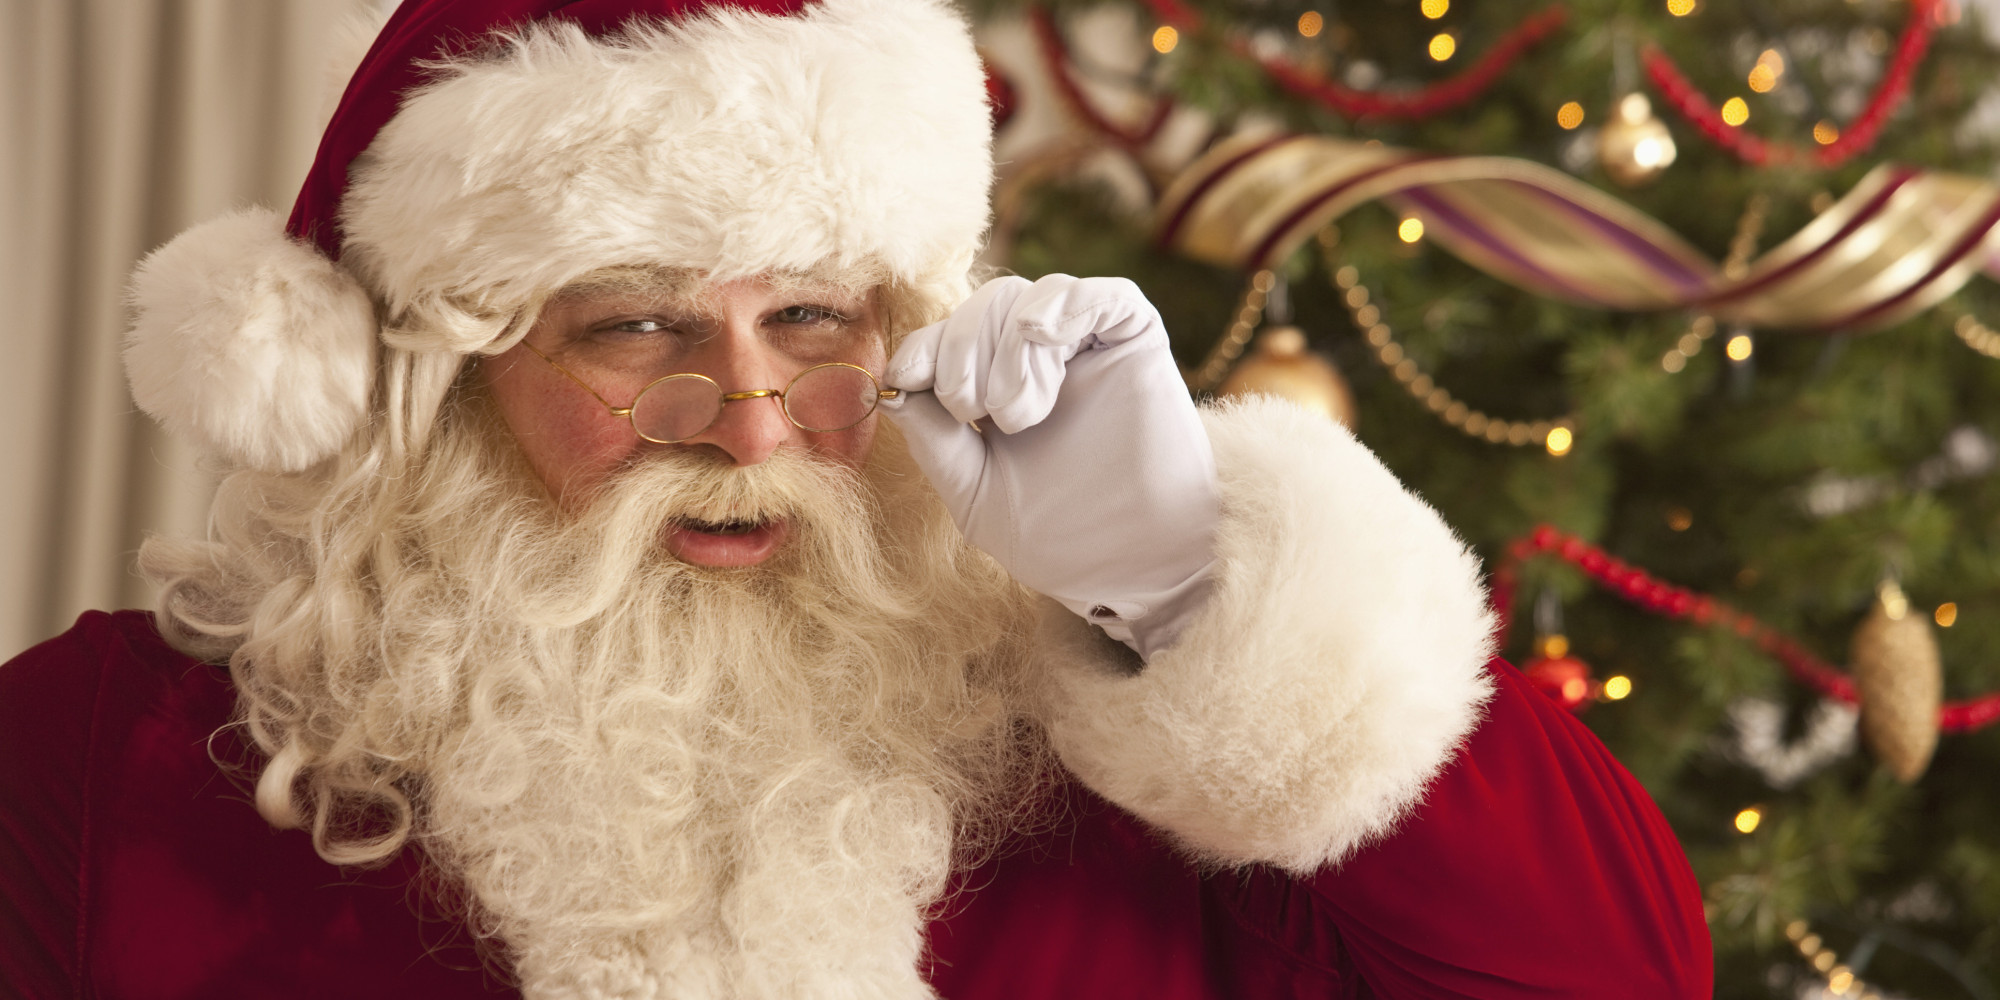 14 best santa backdrop ideas images on Pinterest Xmas pics Ideas for pictures with santa